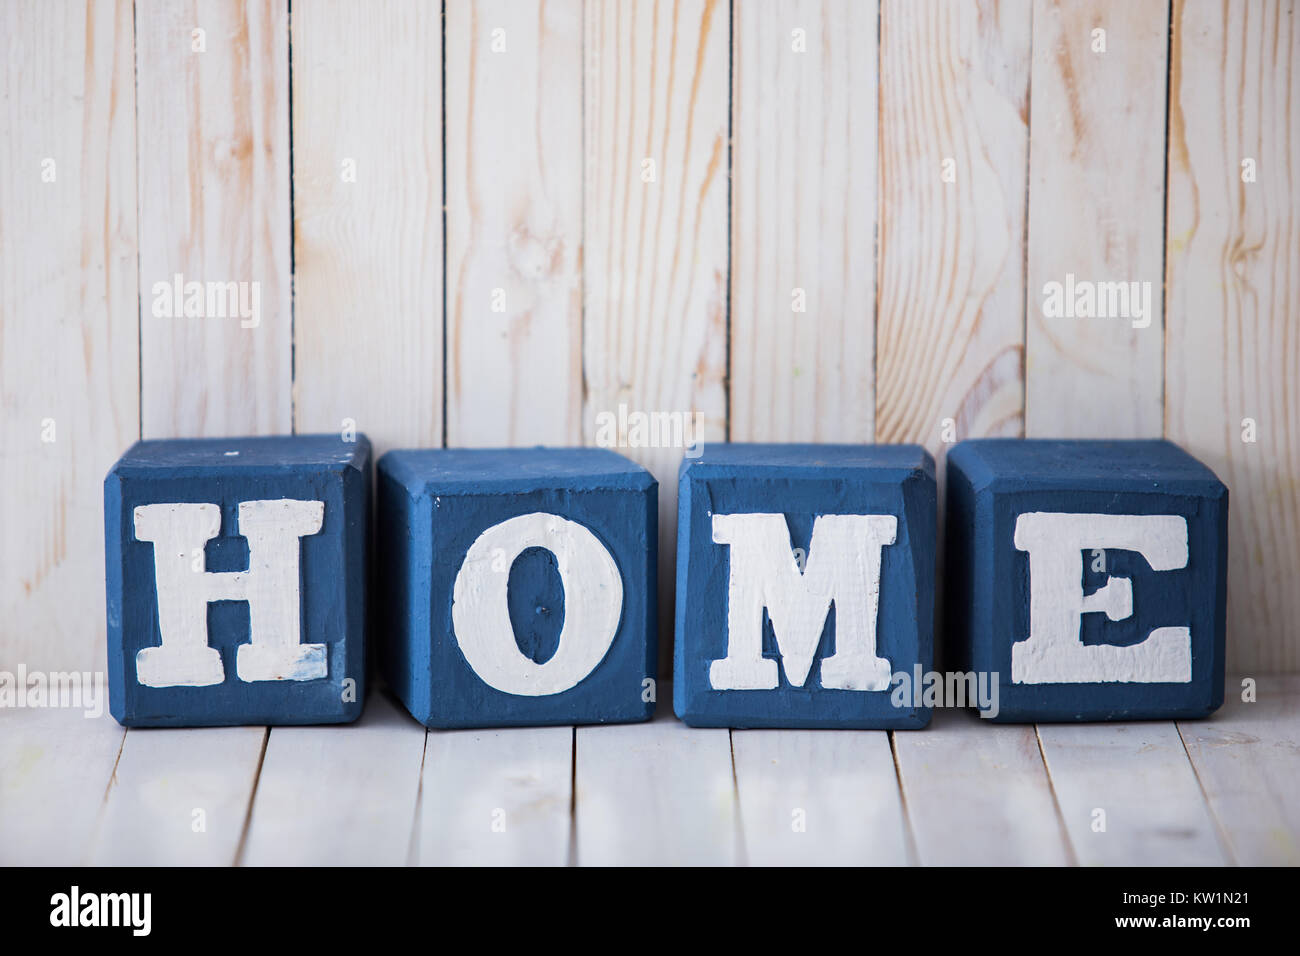 HOME sign made of wooden blocks on wooden background - Stock Image